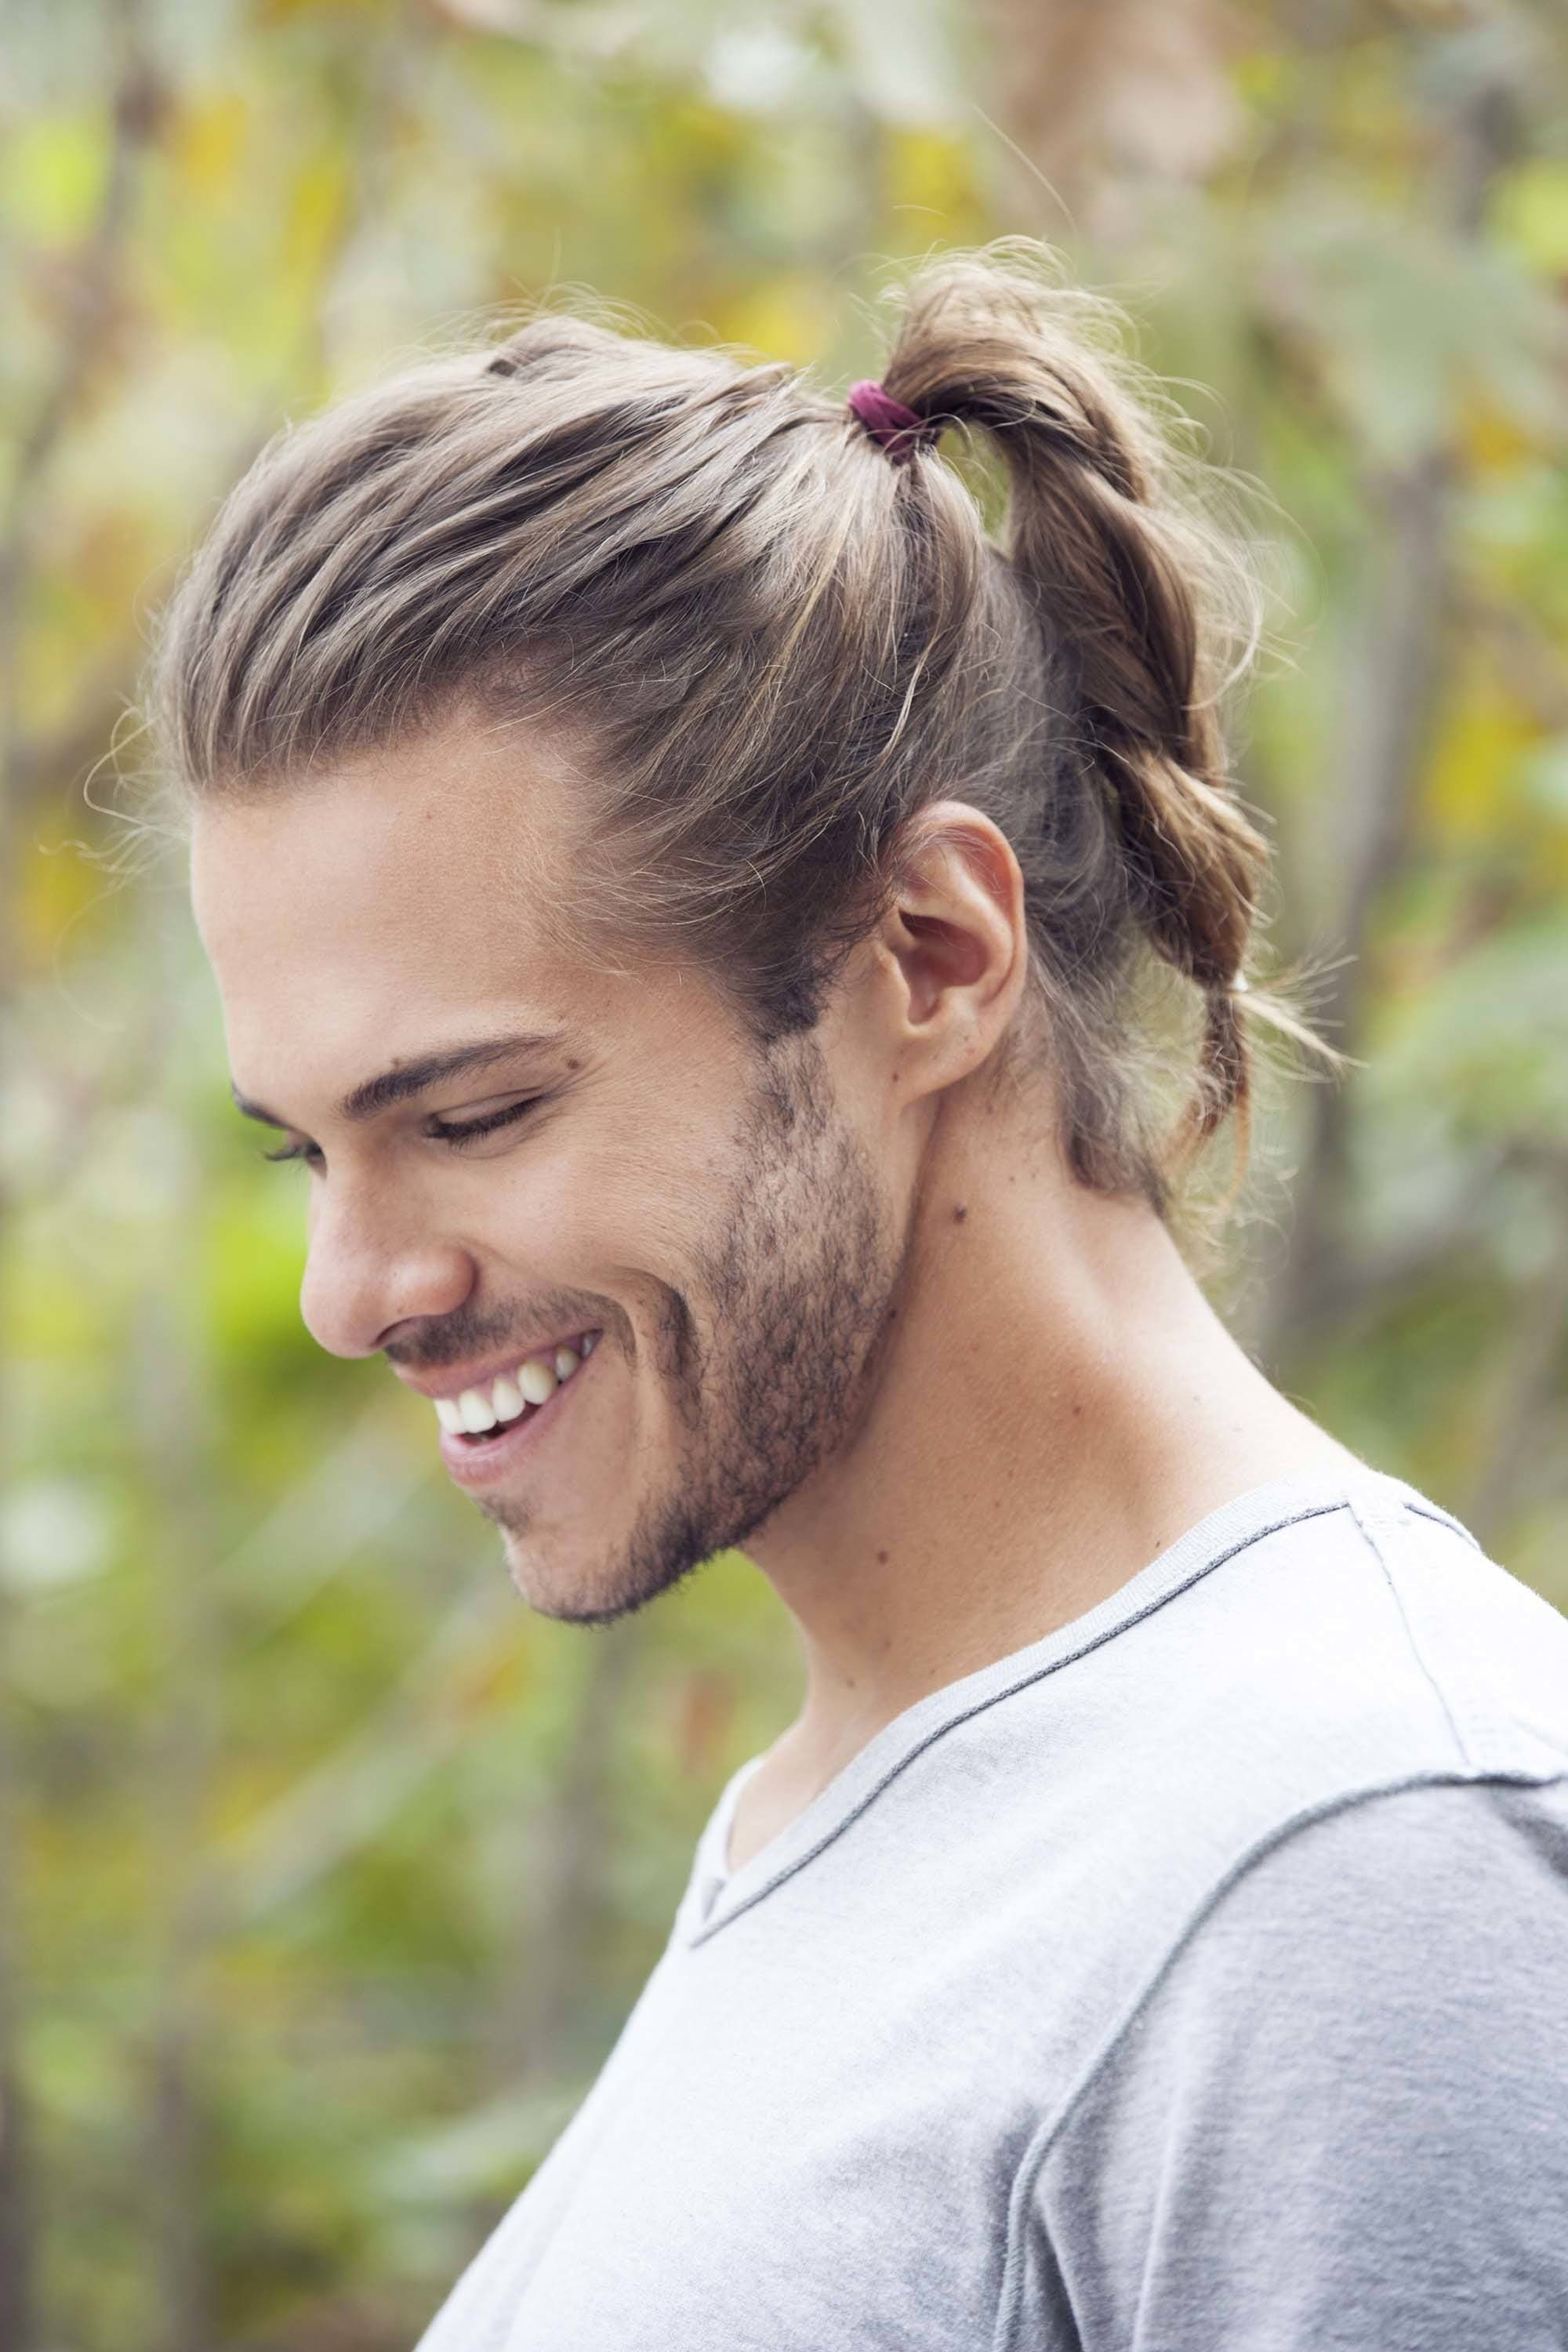 Sporty Haircut And Cool Hairstyle Ideas And Trends For Men